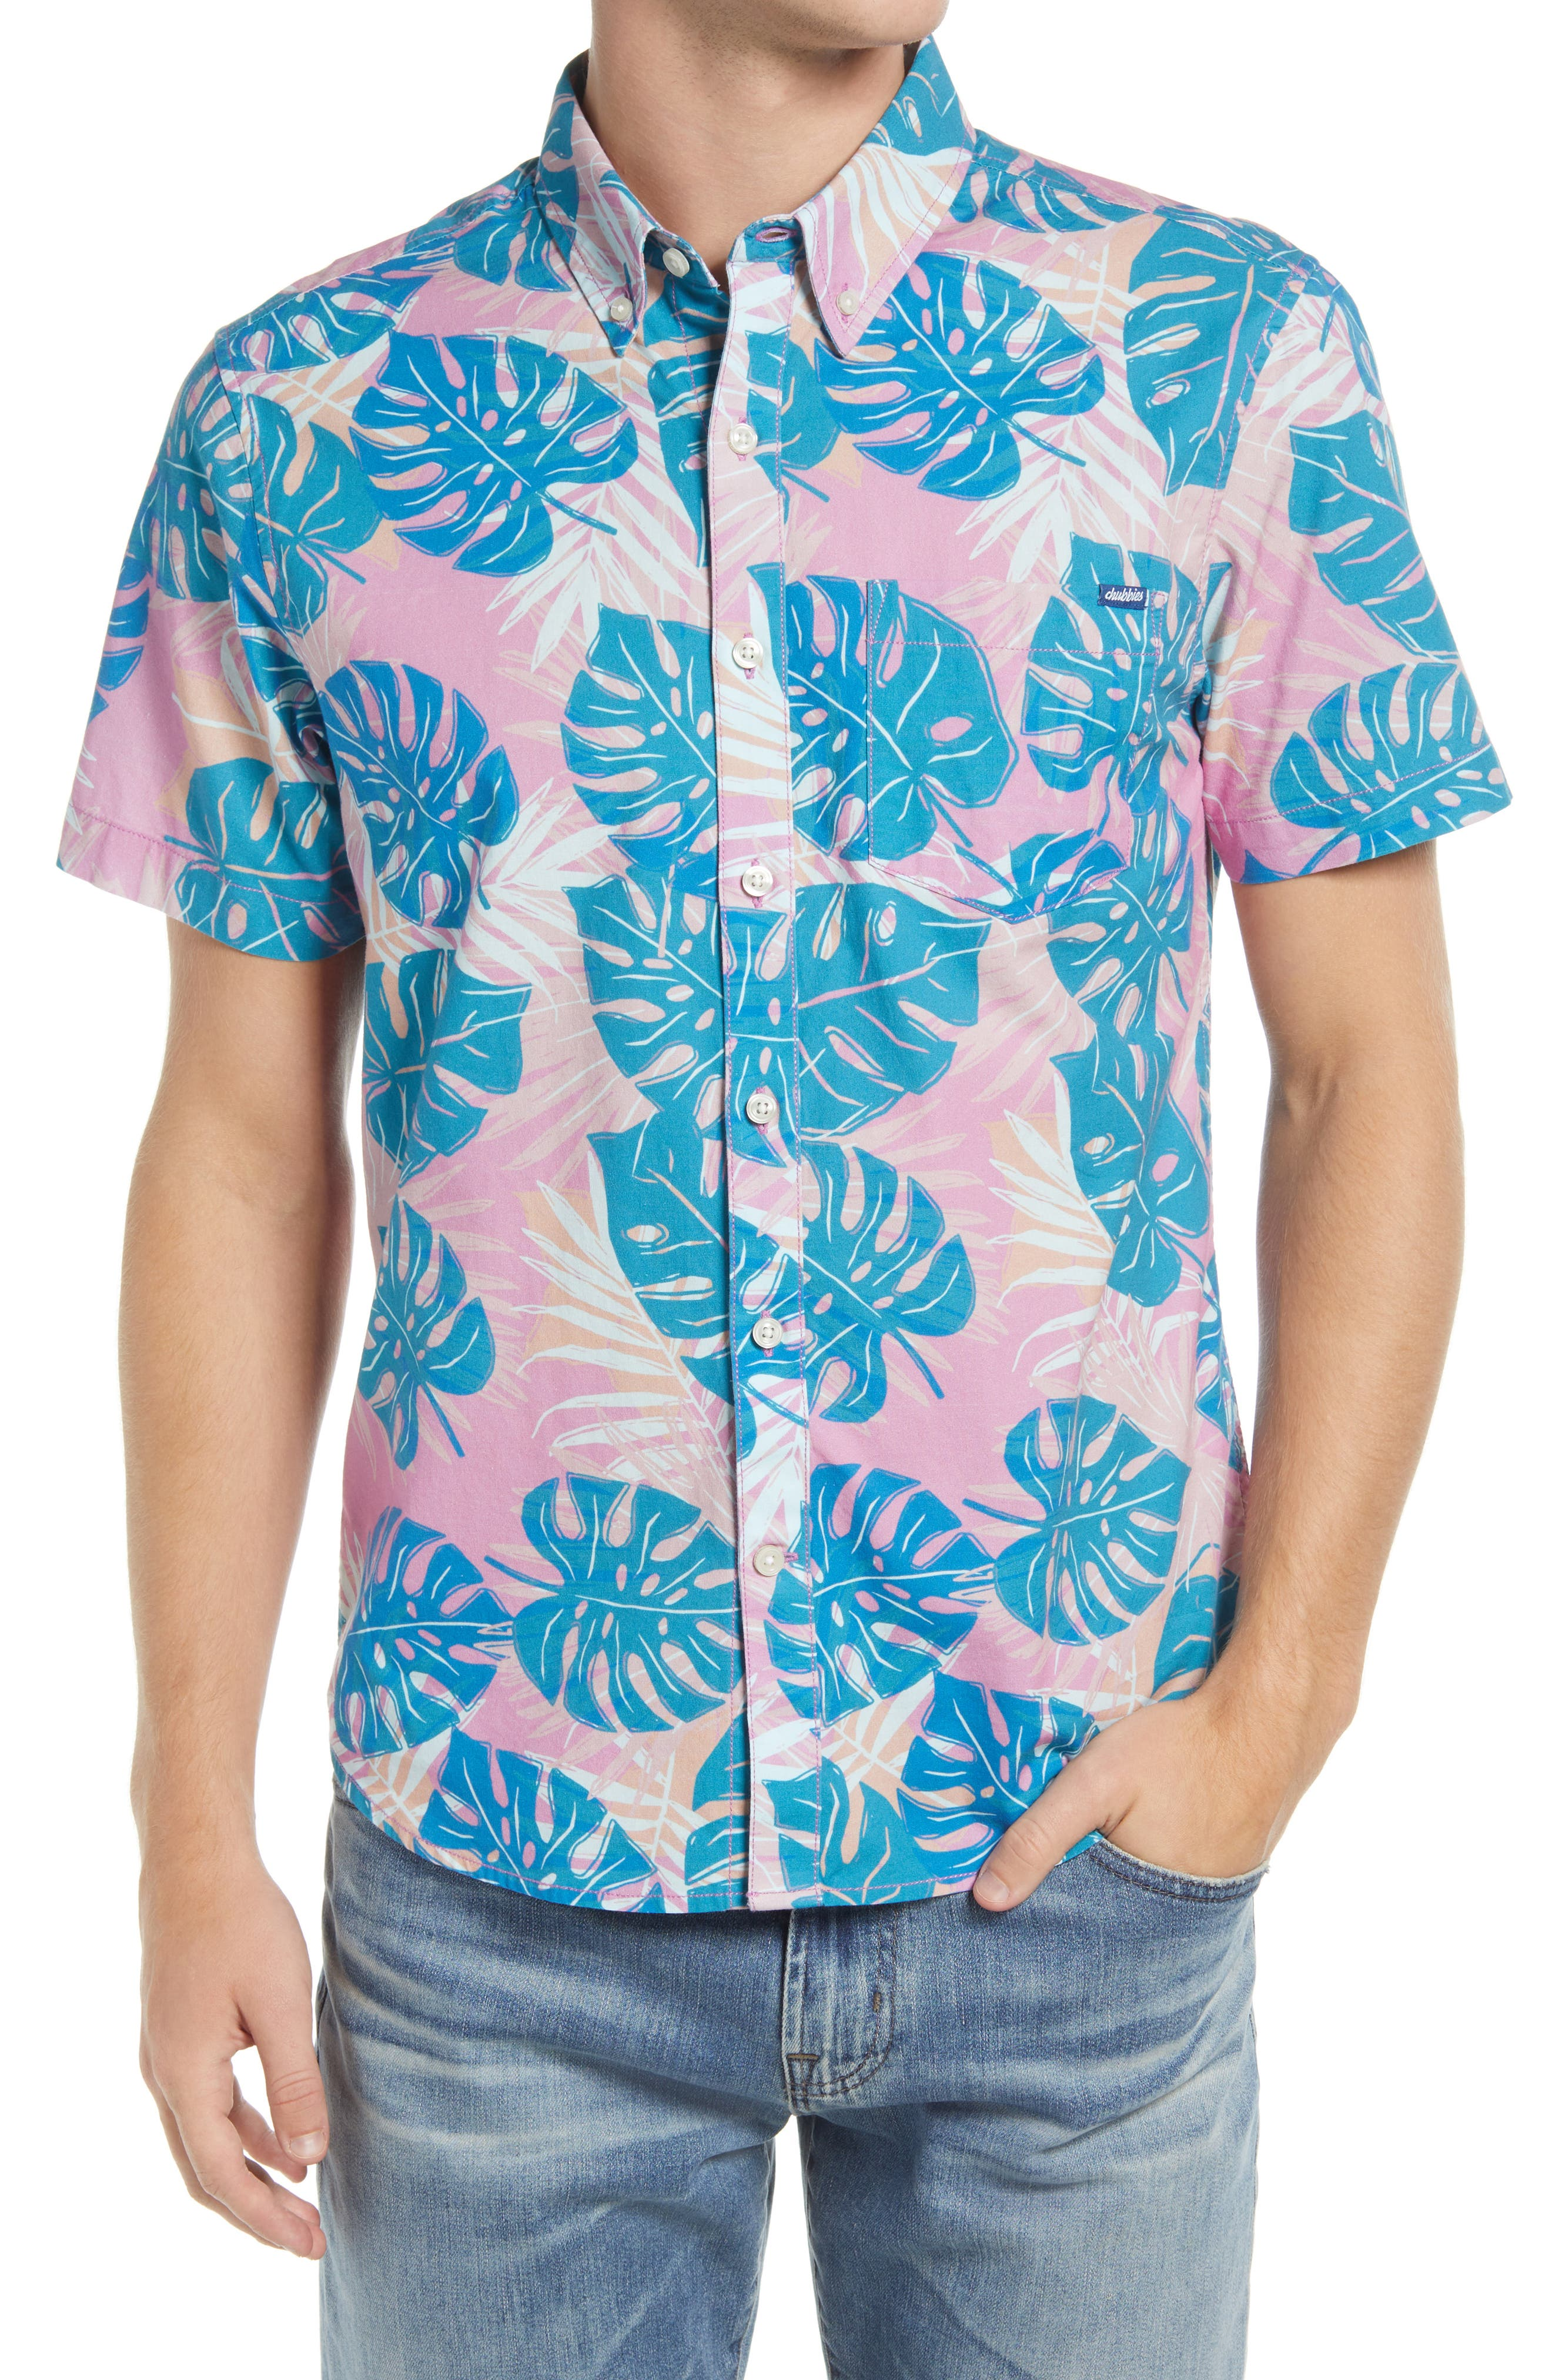 The Remote Breeze Short Sleeve Stretch Button-Down Shirt